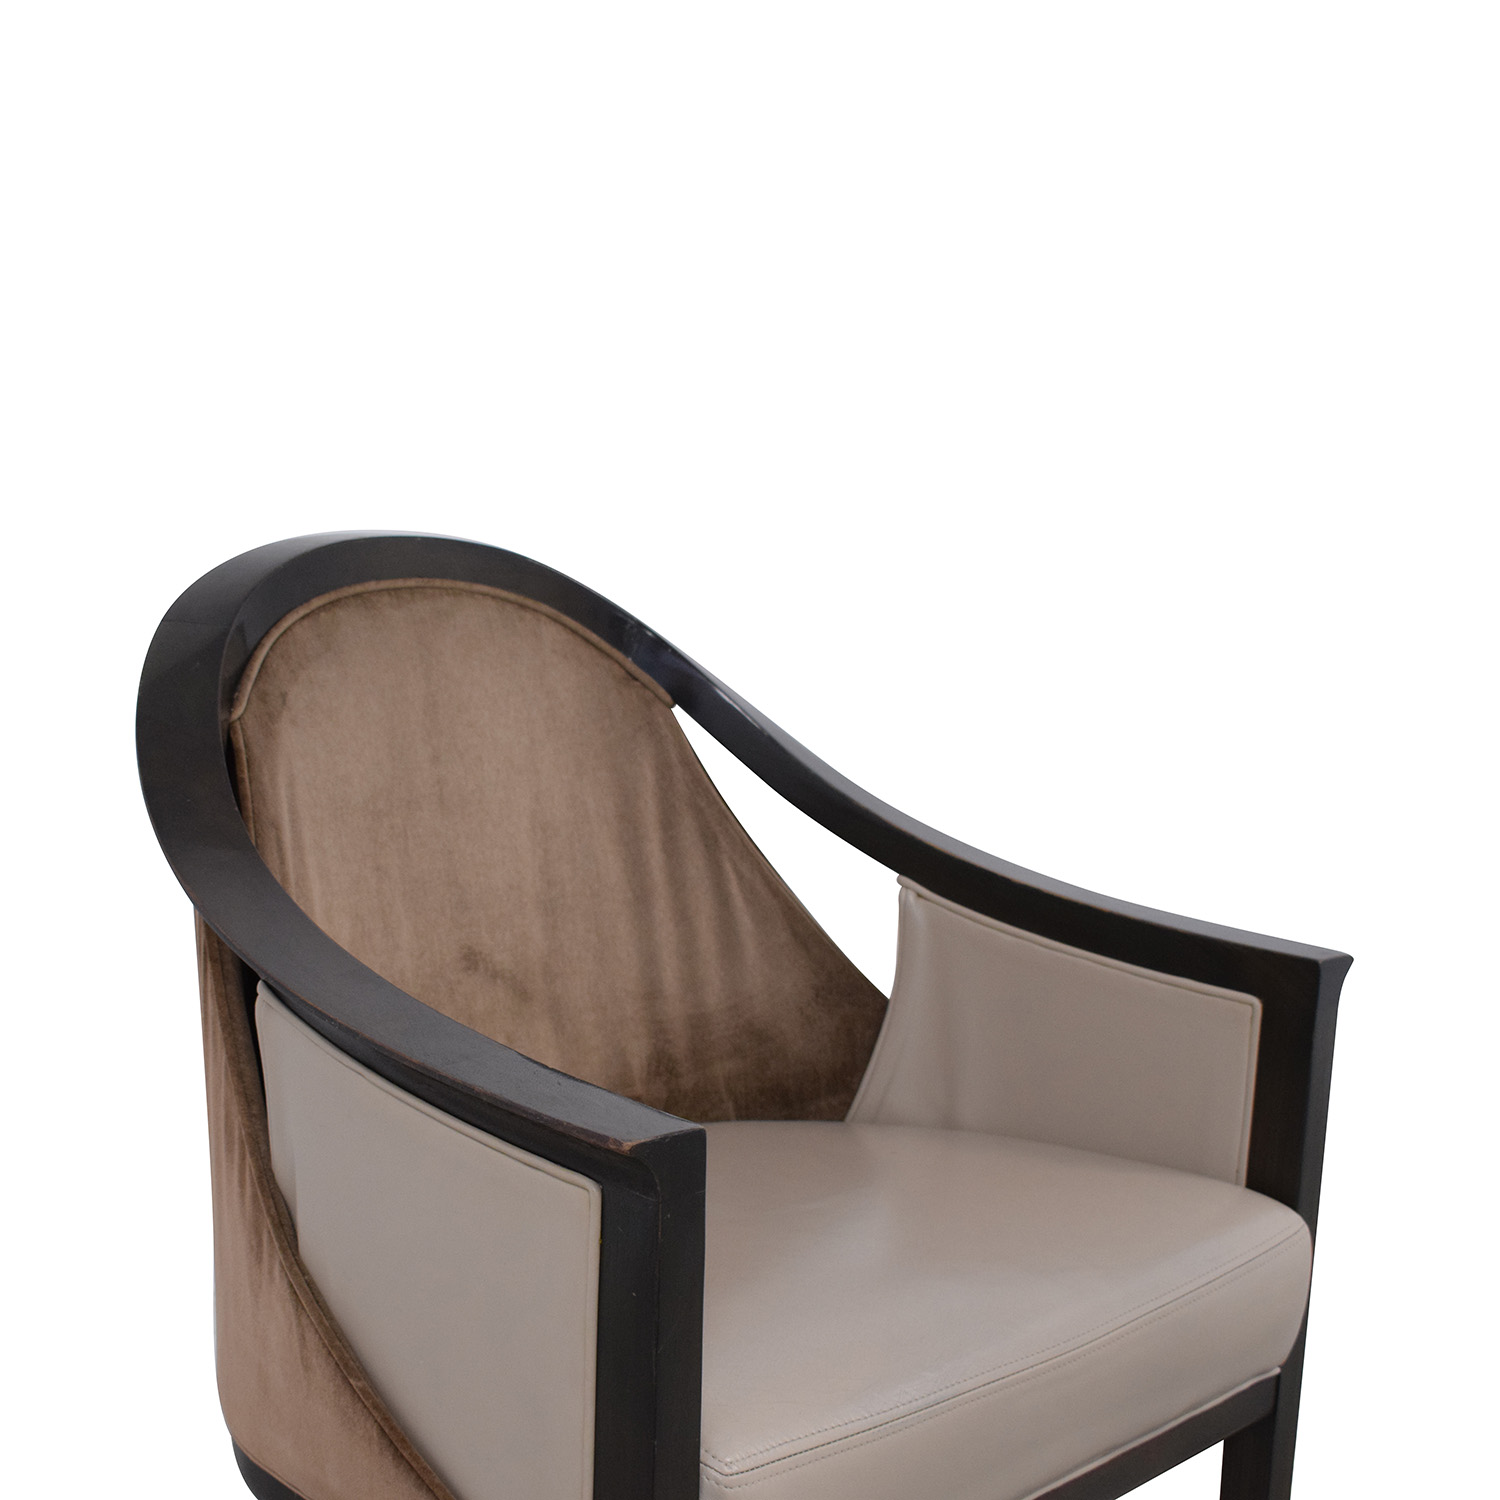 Allied Form Works Allied Works Eleven Madison Park Dining Room Chair on sale